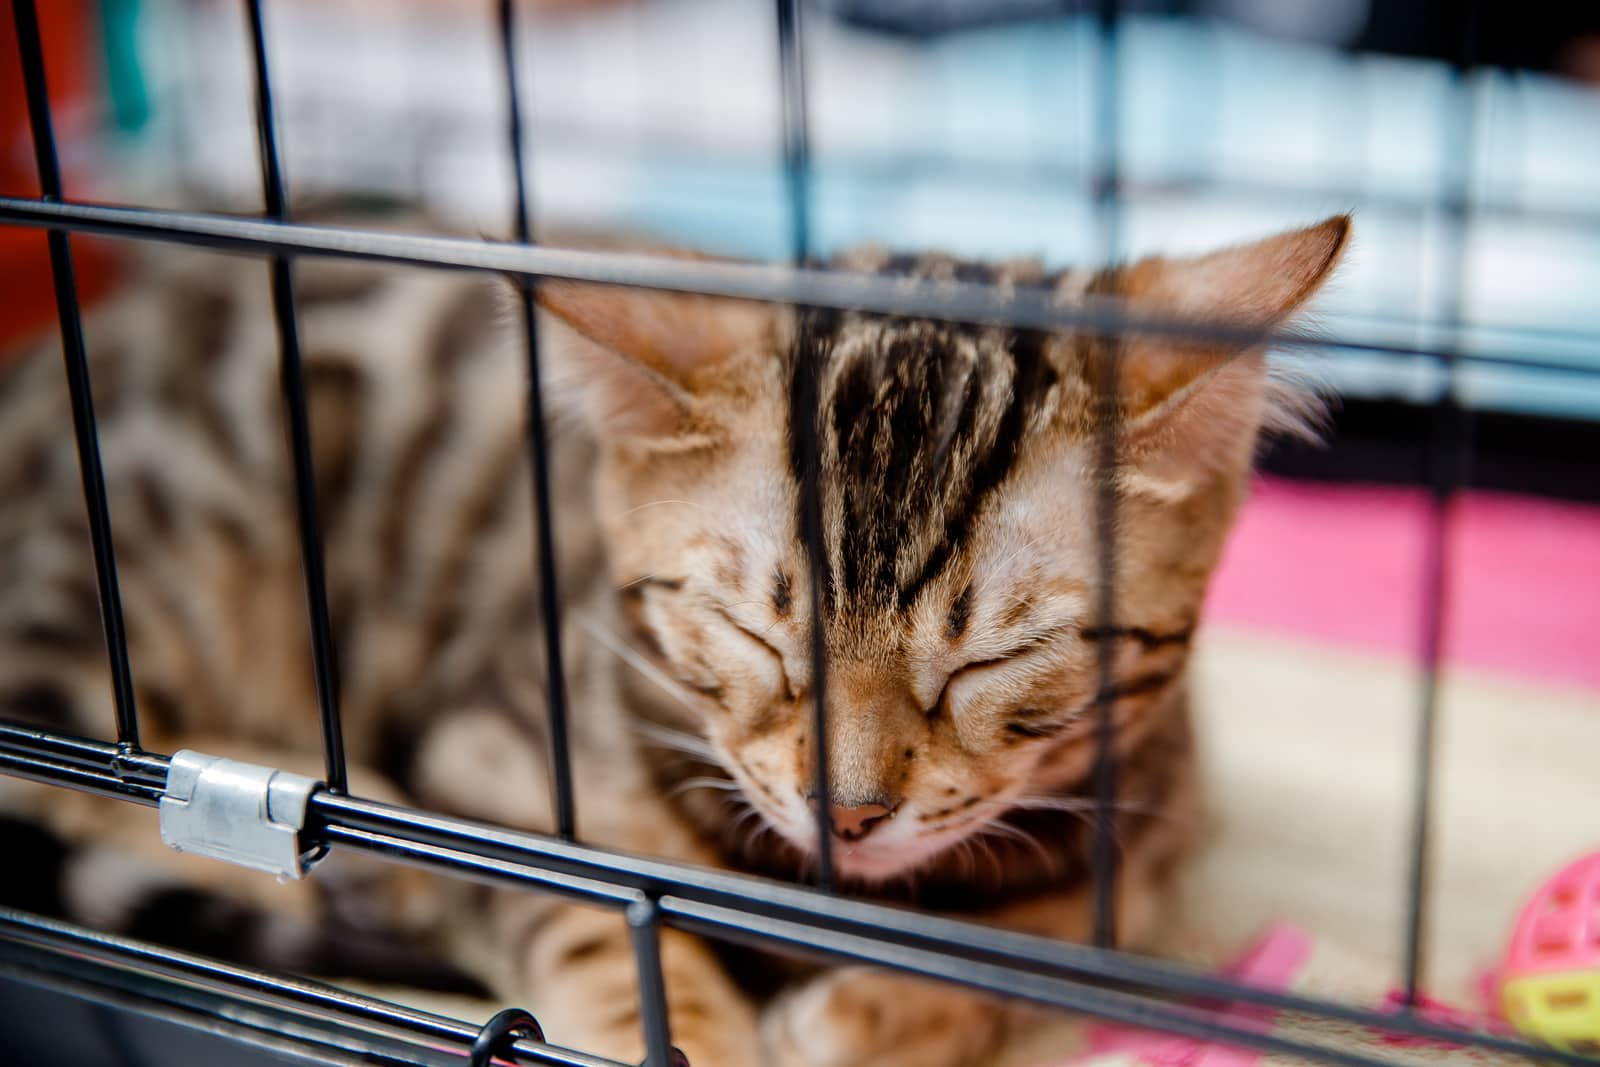 Tabby cat is in cage for transportation and storage in shelter, airport, travel.